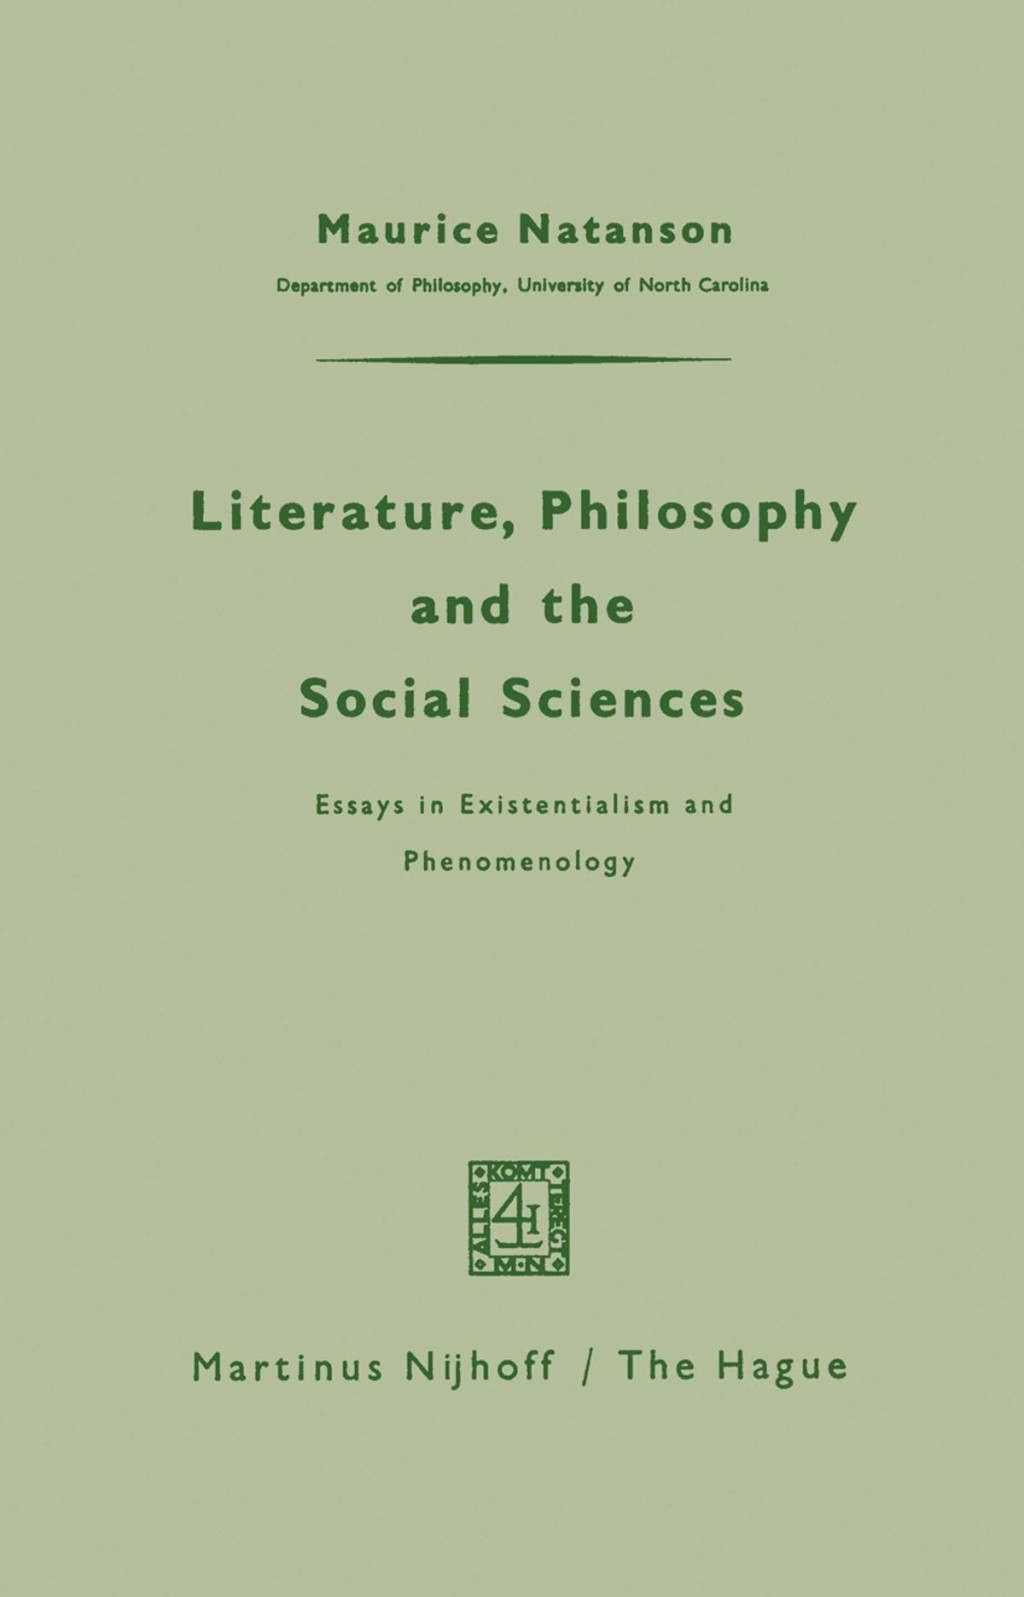 009 Literature Philosophy And The Social Sciences Essay Example Essays In Outstanding Existentialism Ao3 Jean Paul Sartre Pdf Large